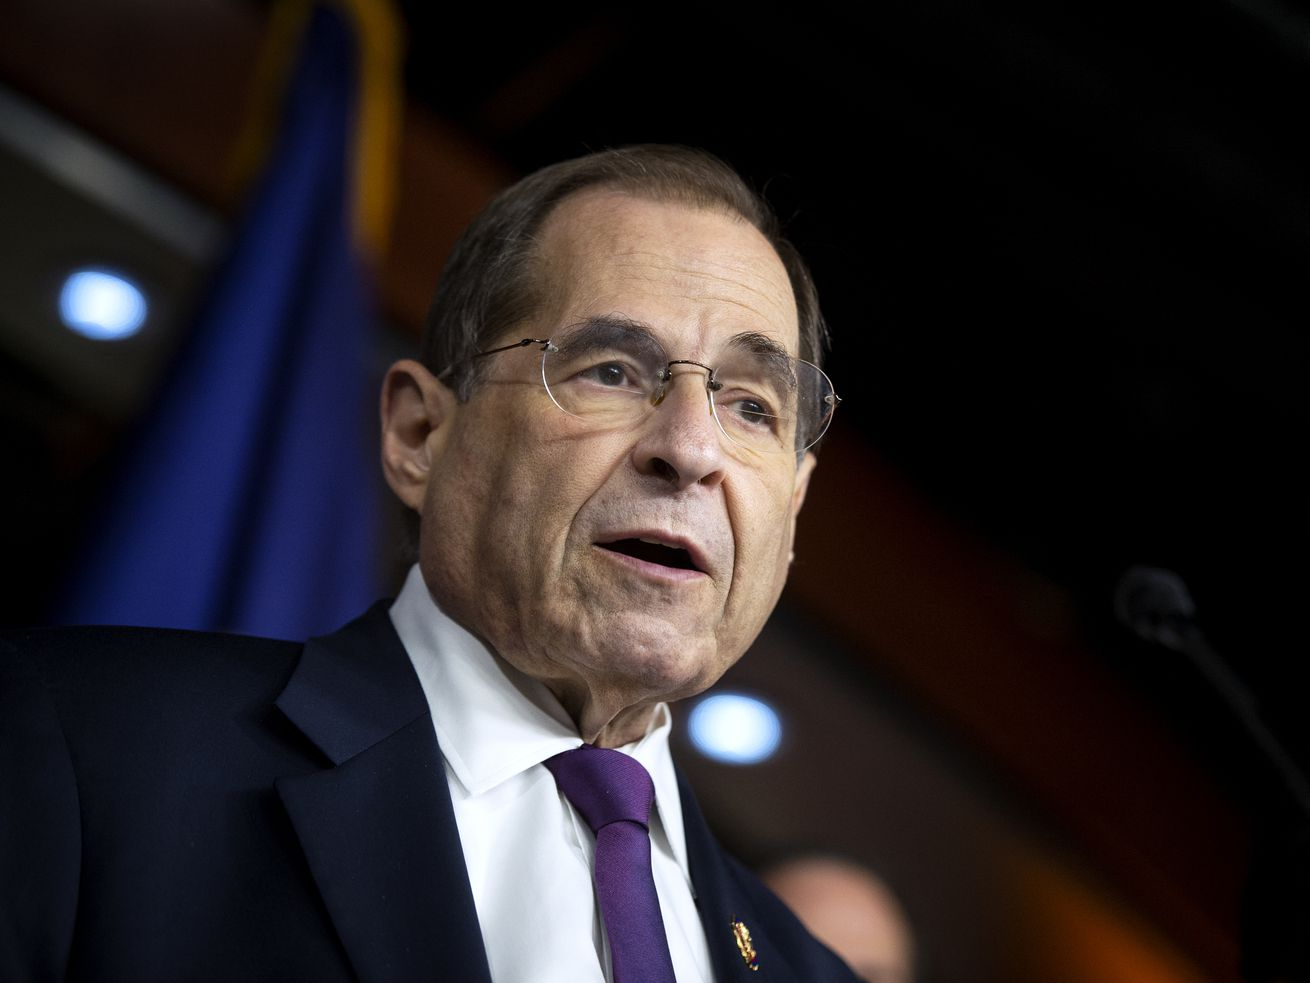 House Judiciary Committee Chairman Jerrold Nadler, D-N.Y., and Democratic members of the House Judiciary Committee, speak to reporters about the testimony from former special counsel Robert Mueller and their plan to continue to investigate President Donal